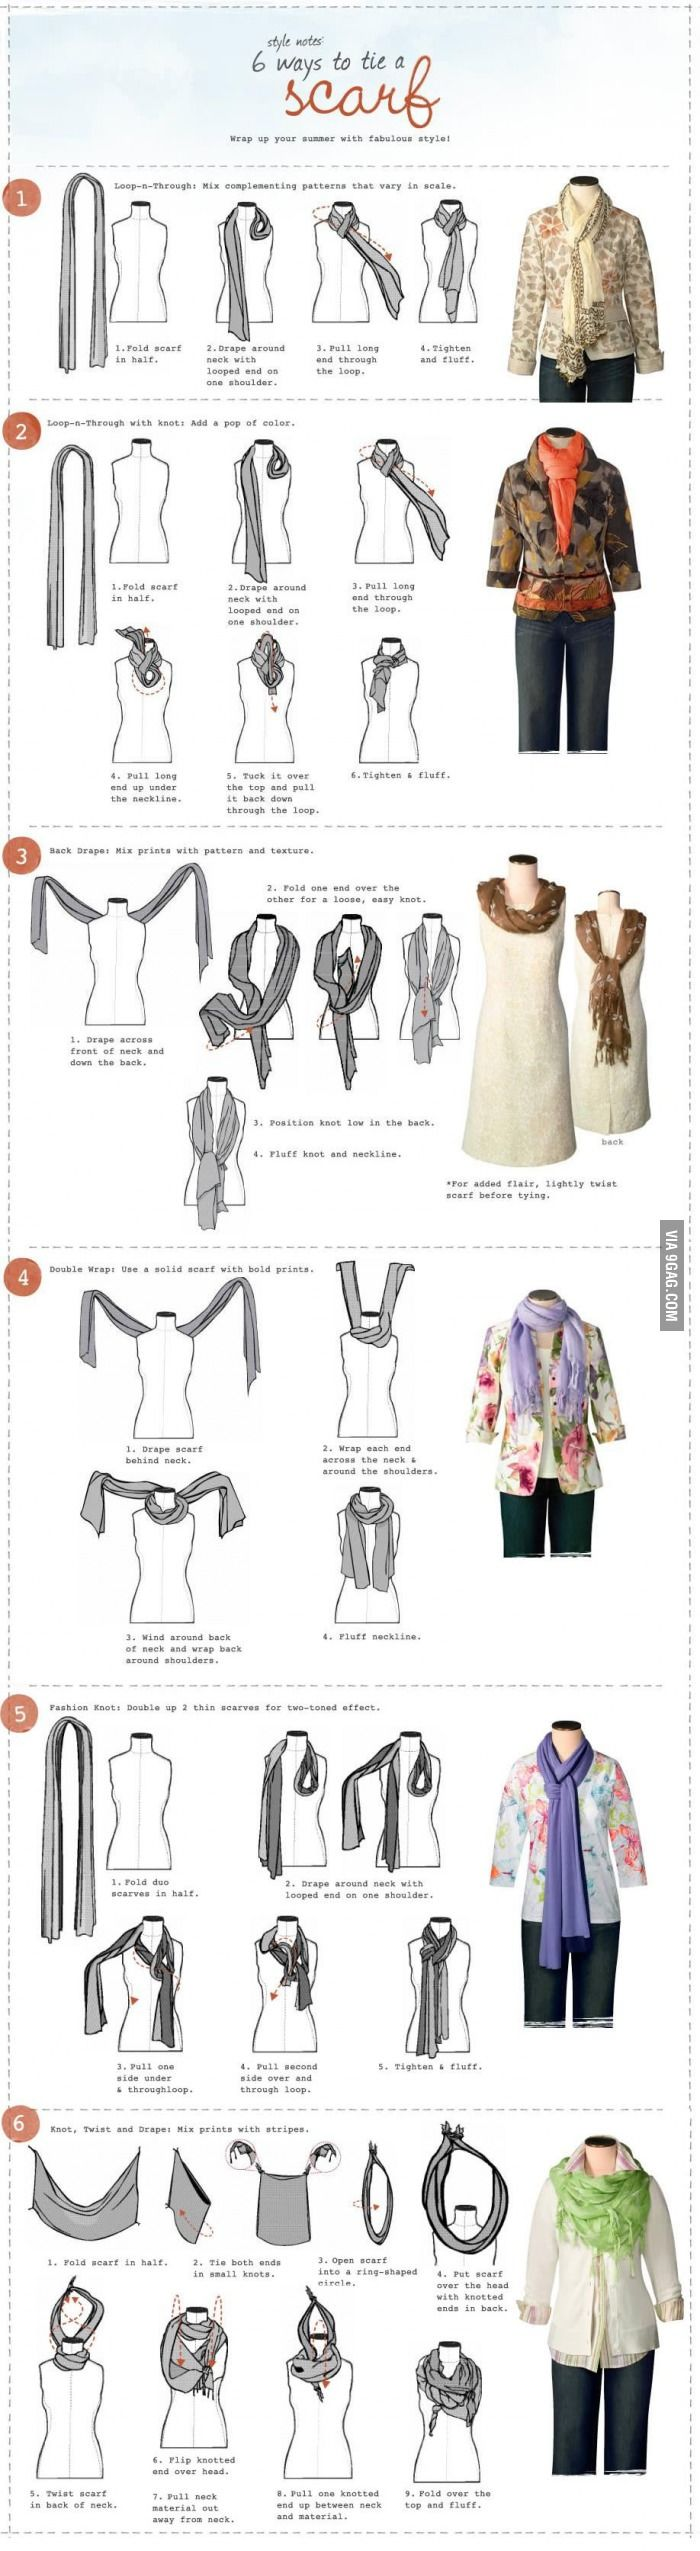 Best 20+ Tie A Tie Easy Ideas On Pinterest  How Tie A Tie, How To Tie Tie  And Easy Tie Knot